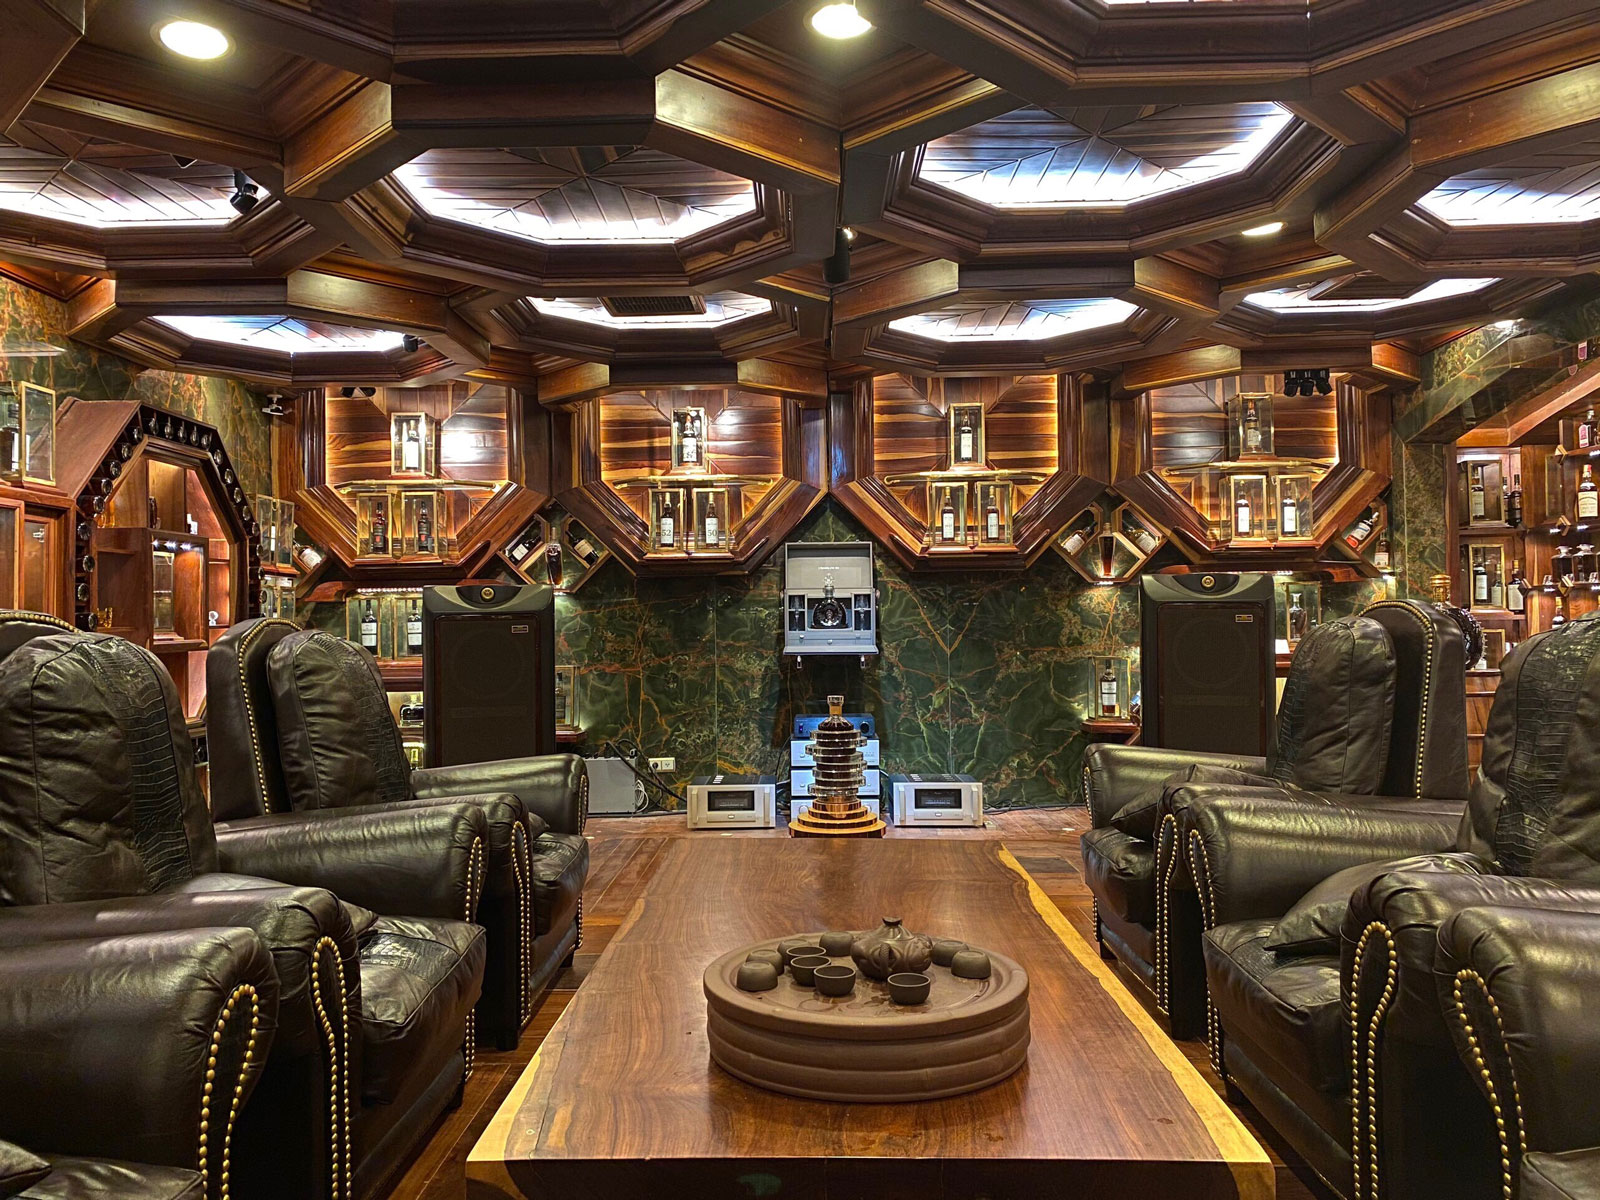 world-record-whiskey-collection-5-FT-BLOG1119.jpg